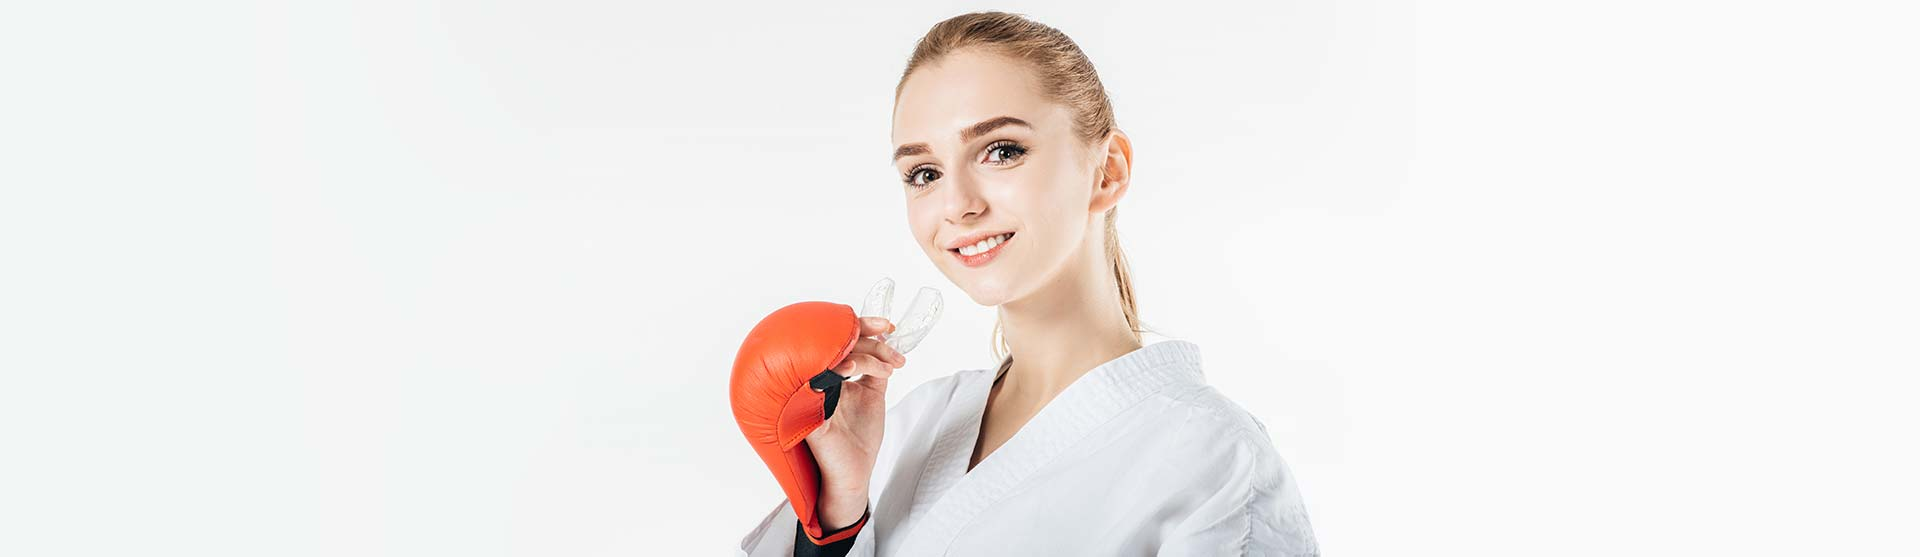 Smilling female karate fighter holding mouthguard.